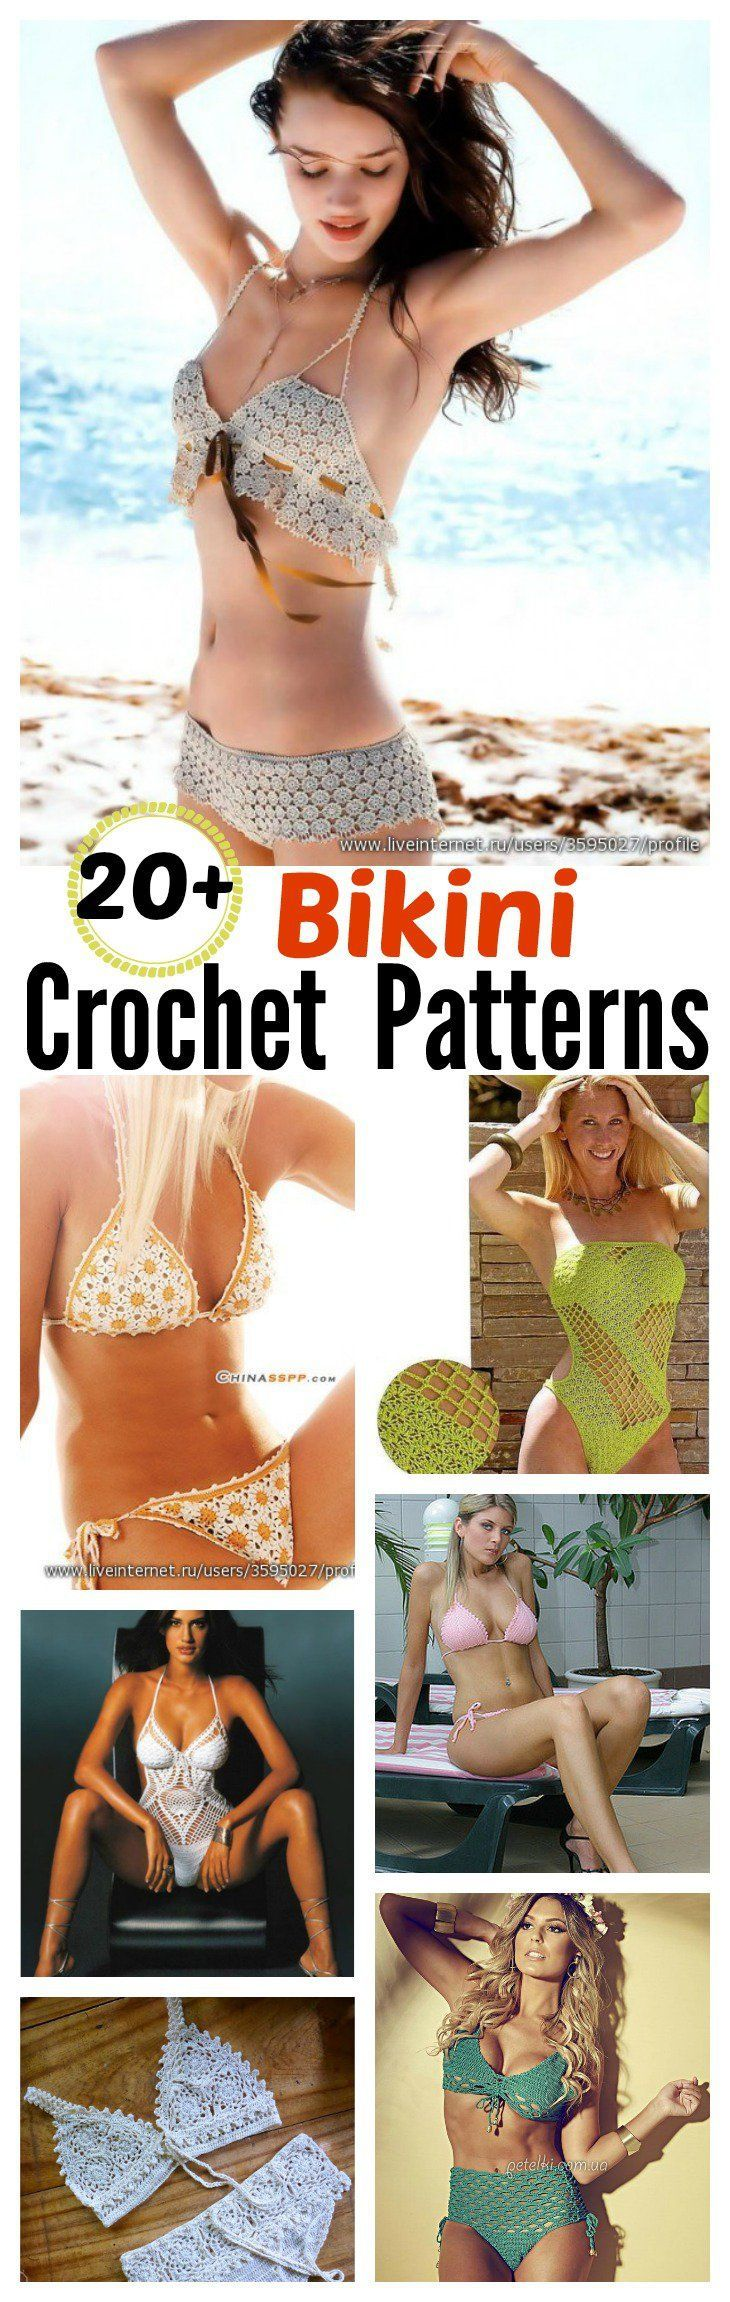 20+ Free Crochet Bikini Patterns. Crochet your own swimming suit or bathing suit this summer!